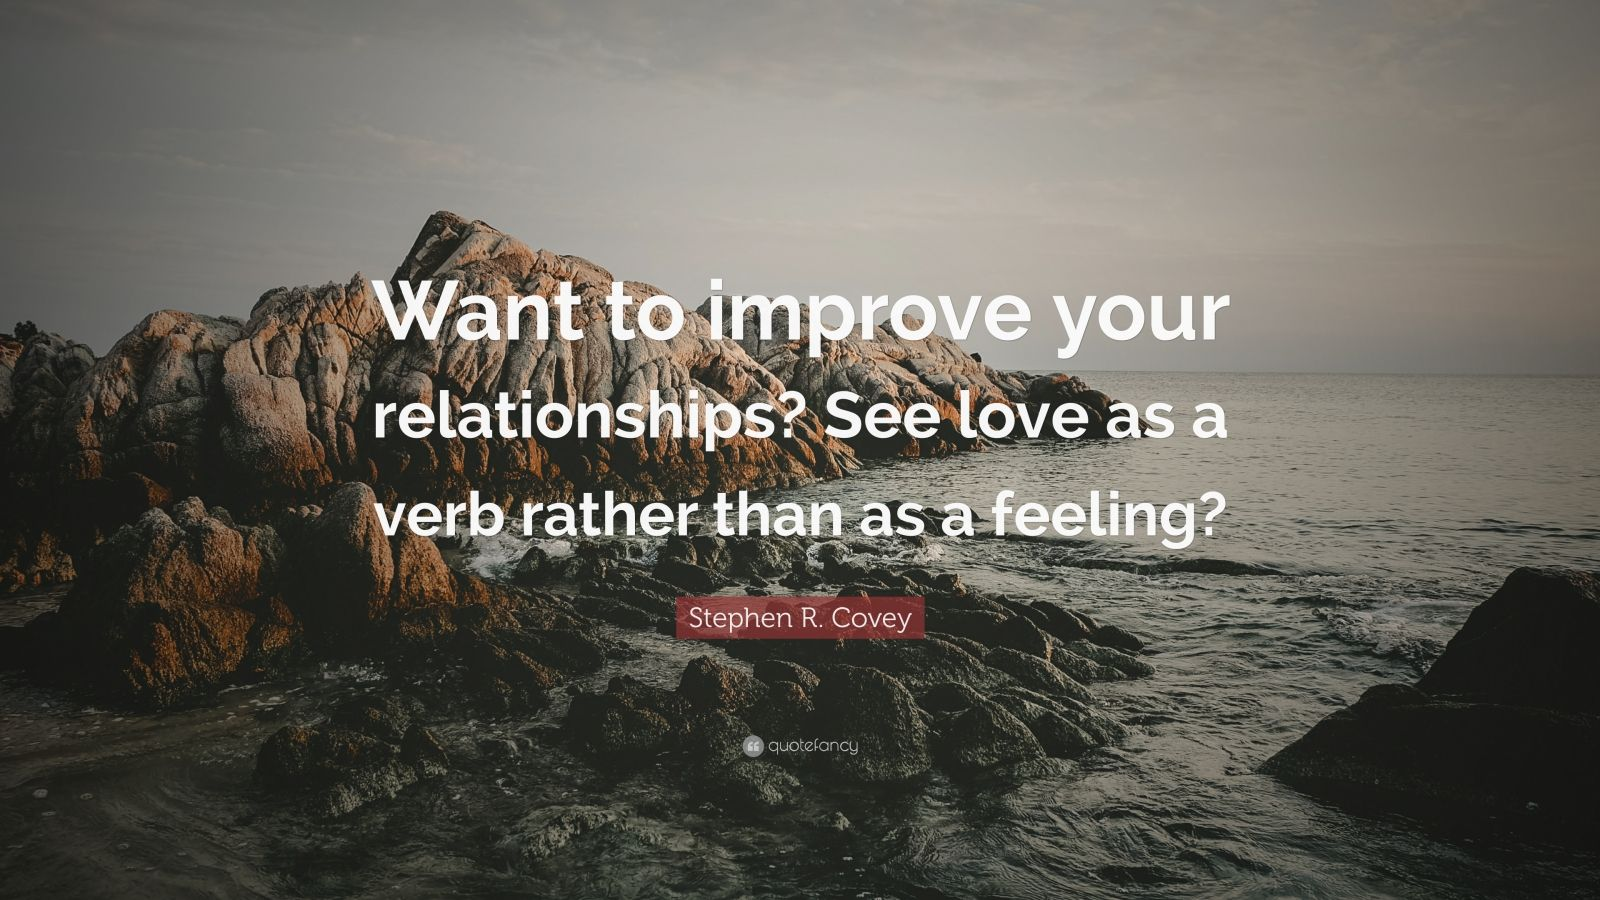 """Stephen R. Covey Quote: """"Want to improve your relationships? See love as a verb rather than as a feeling?"""""""